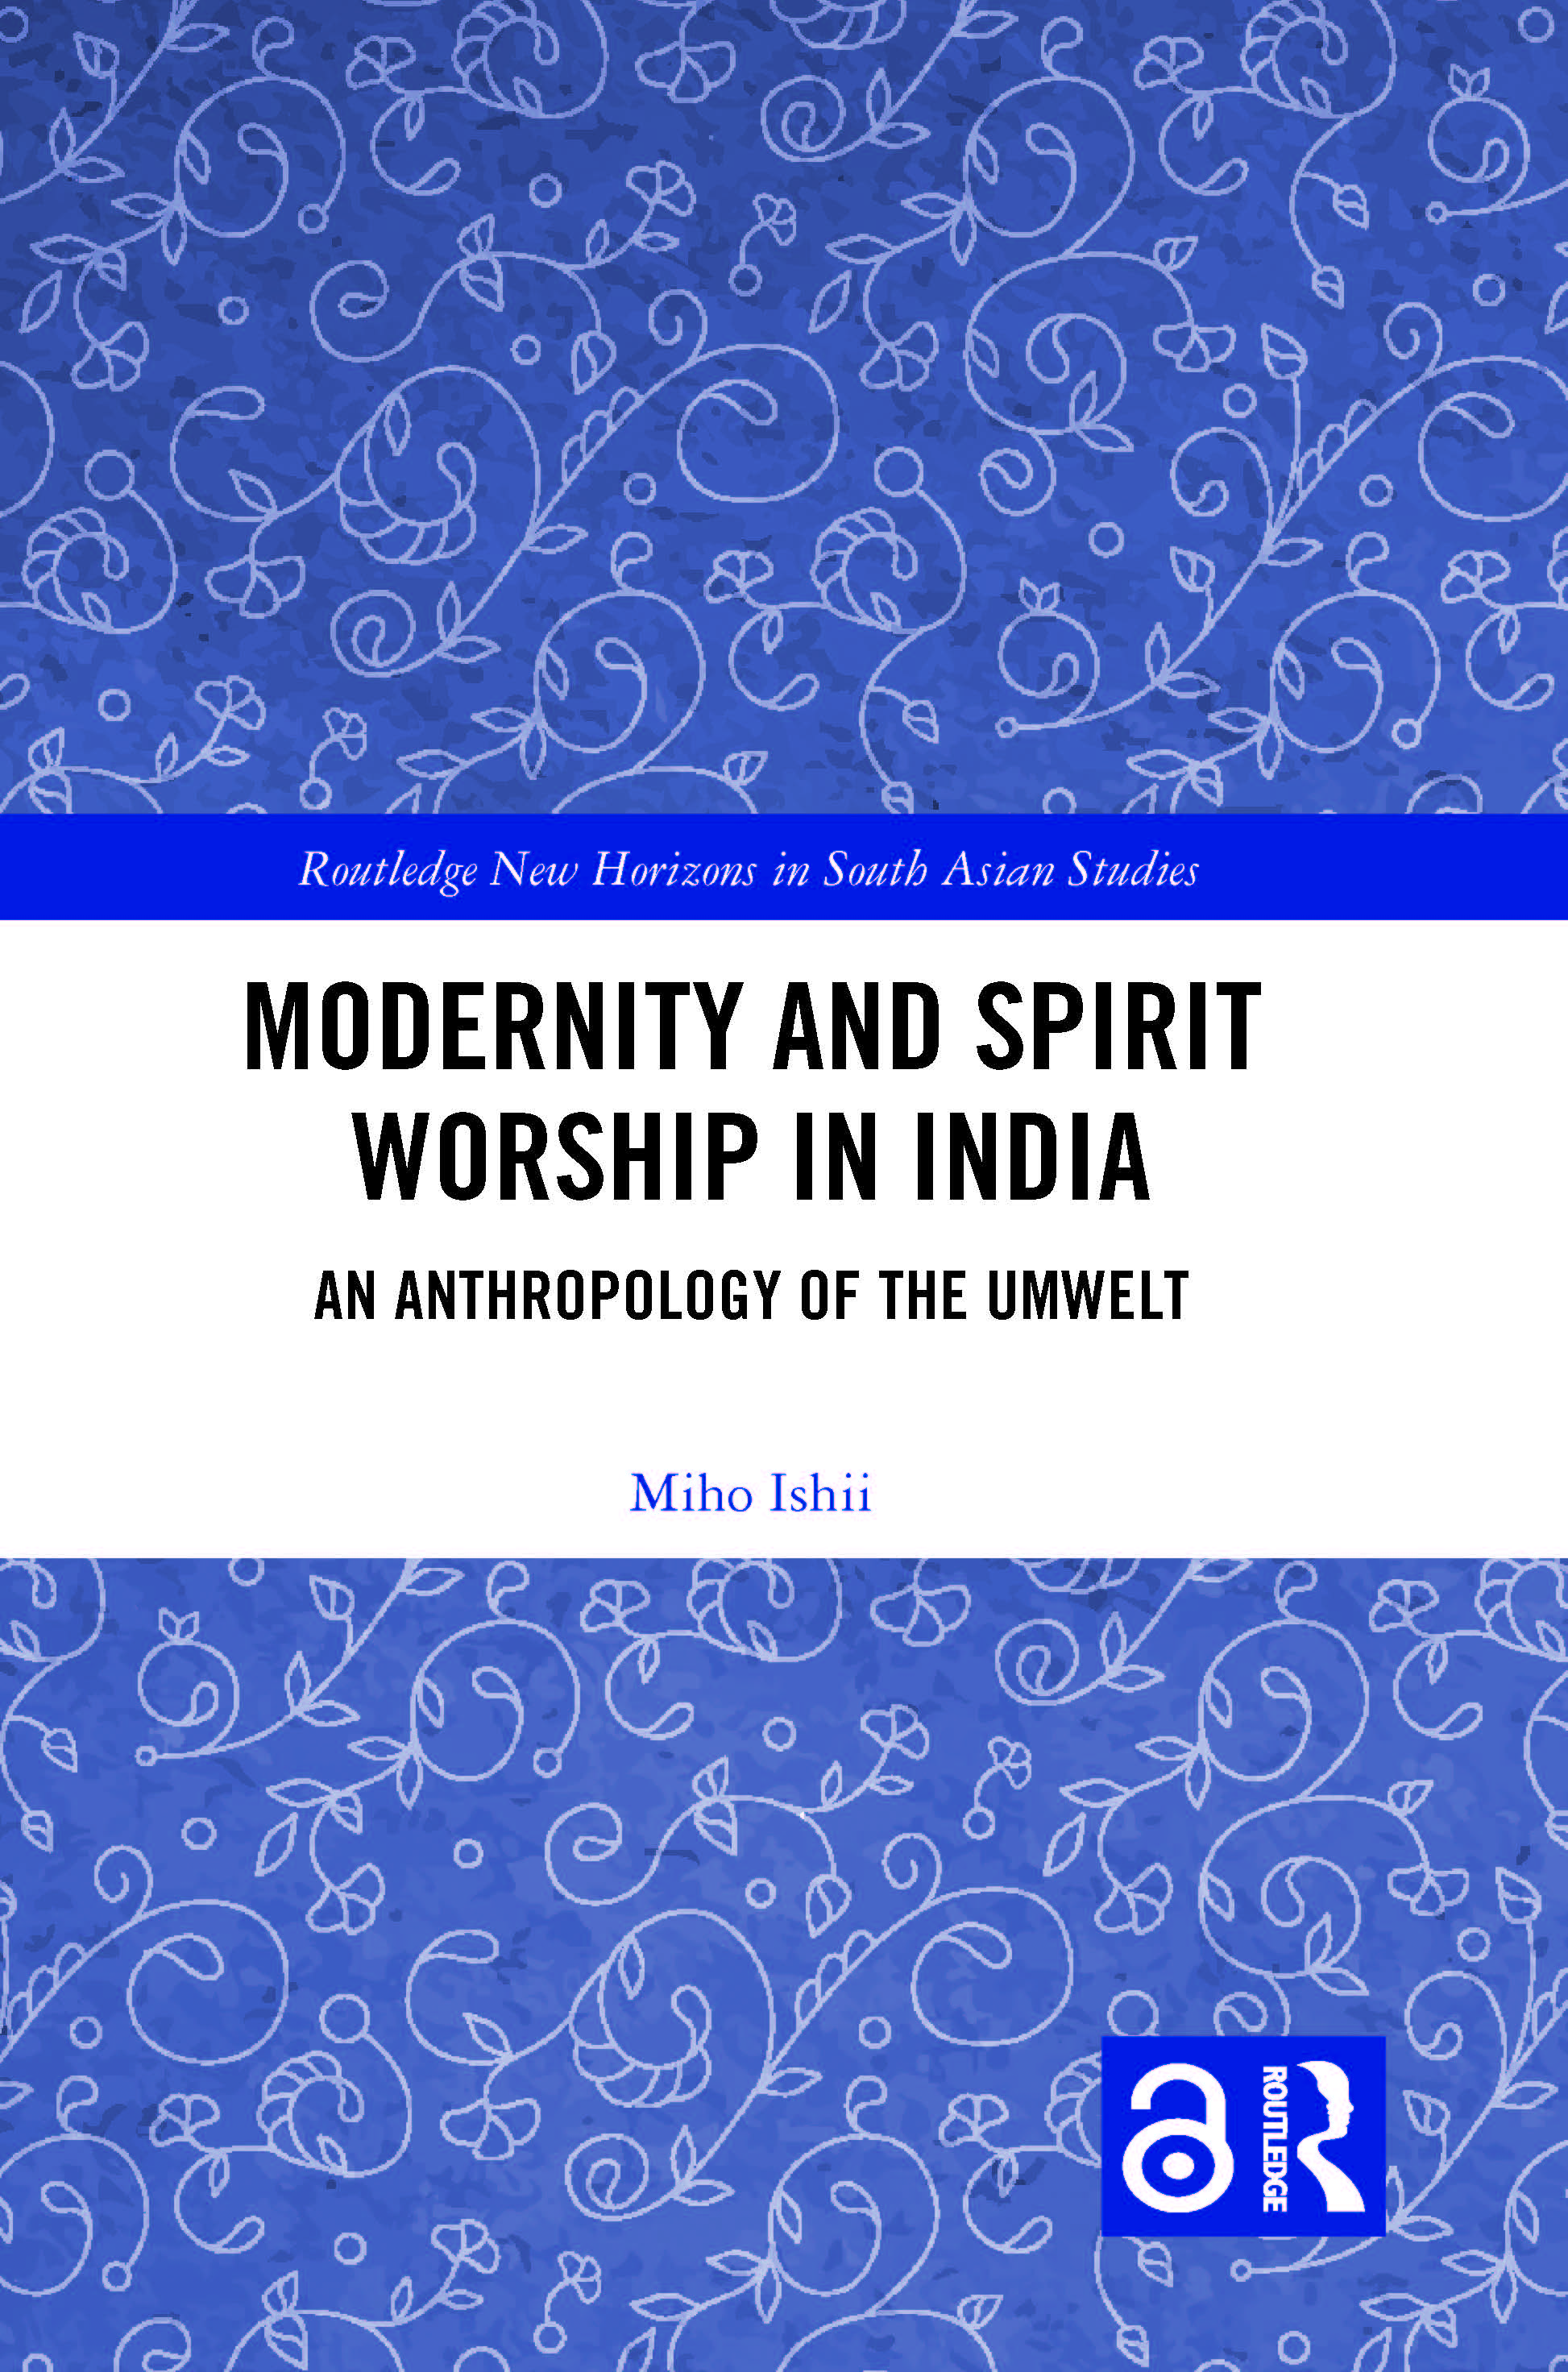 Modernity and Spirit Worship in India: An Anthropology of the Umwelt book cover